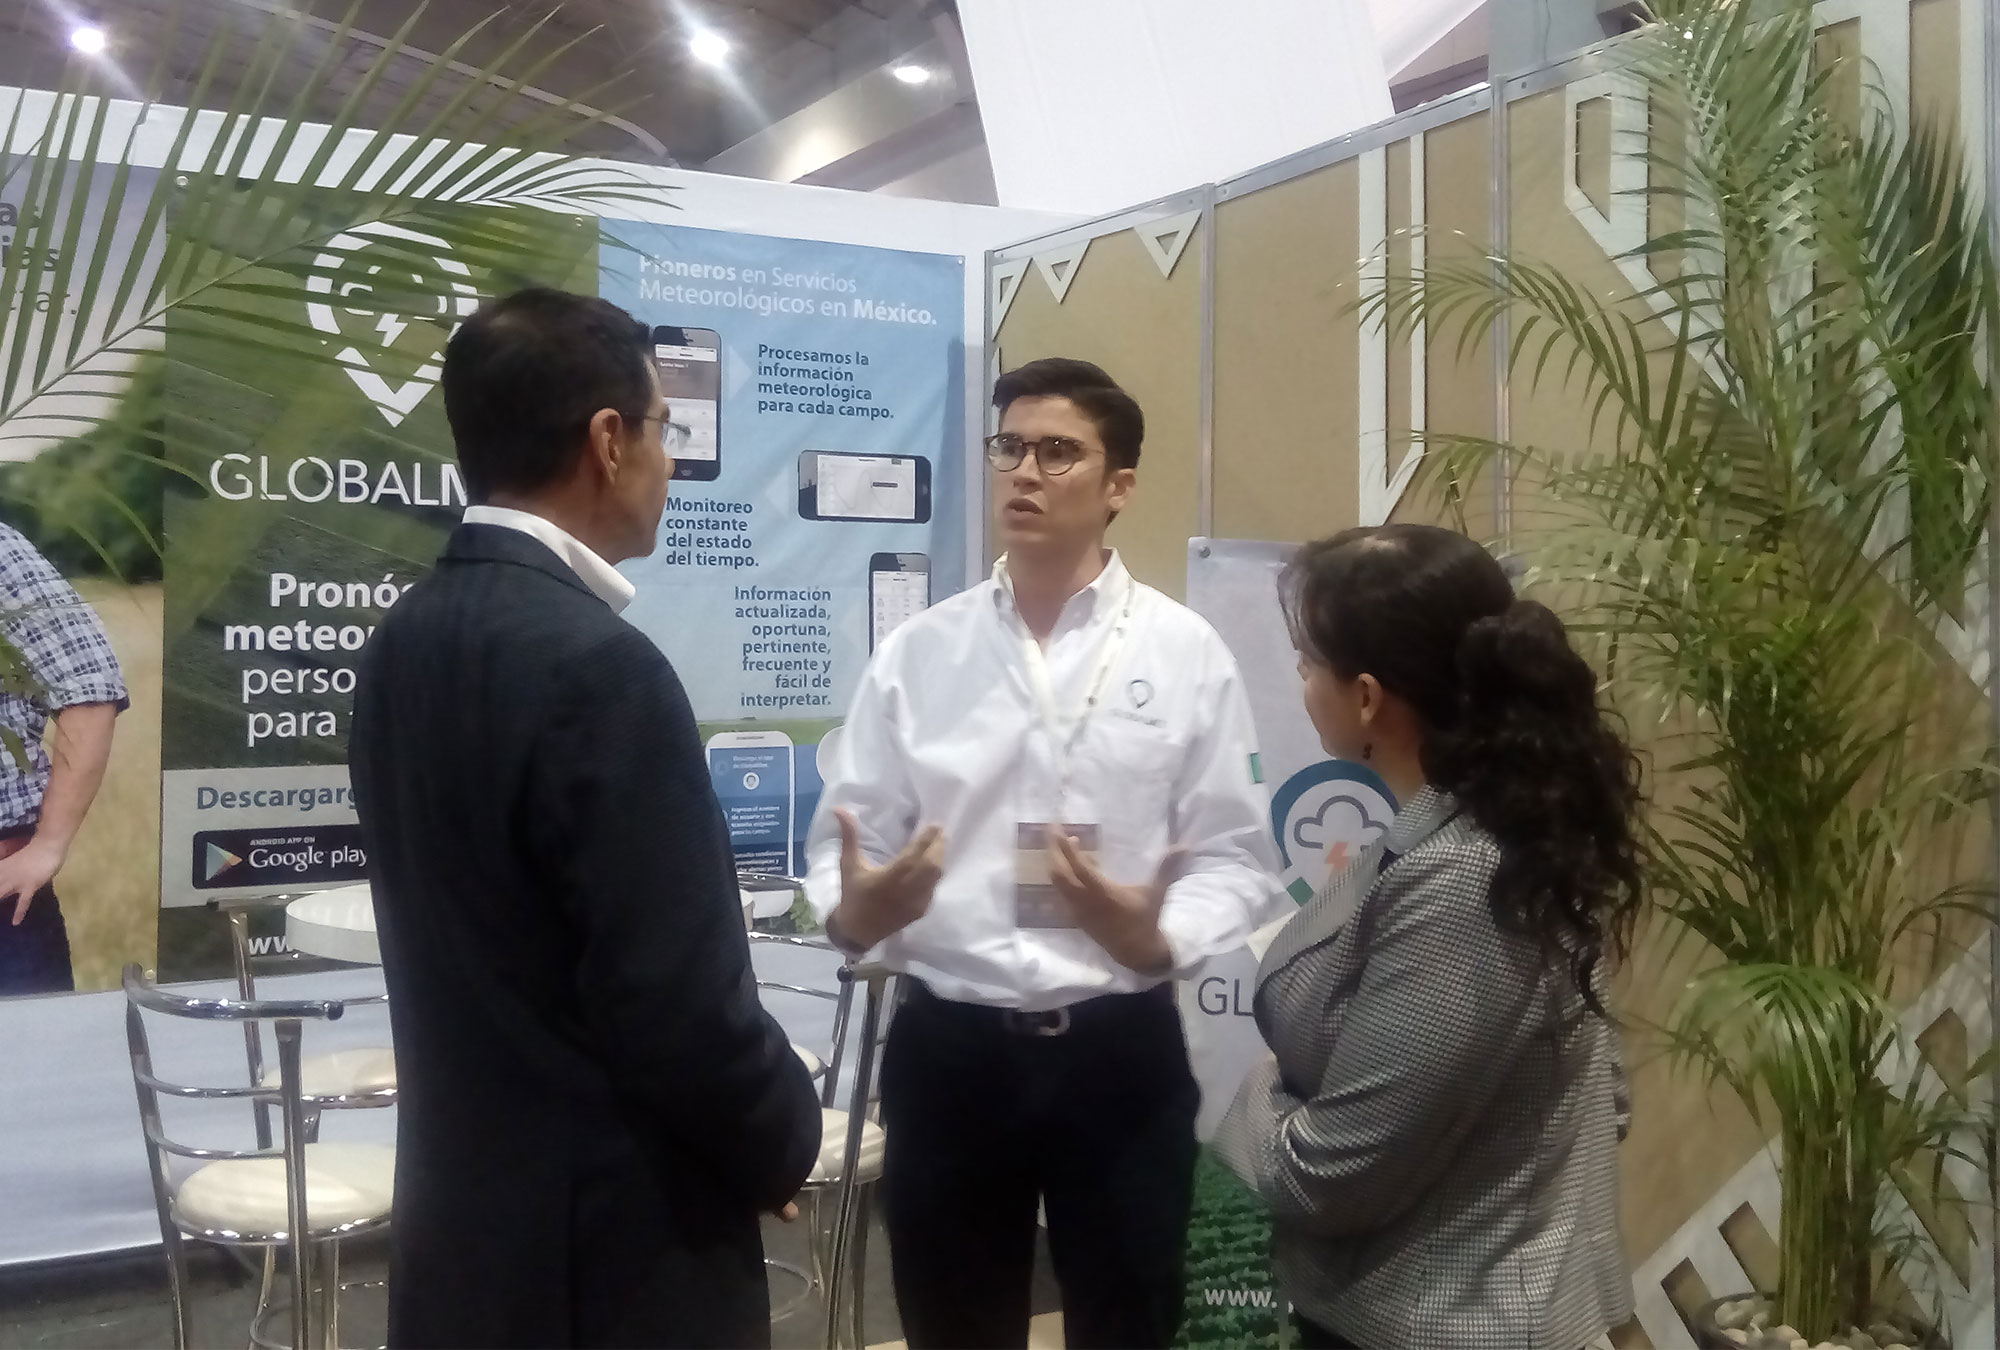 Man speaks to two judges in front of a booth with promotional materials for Globalmet